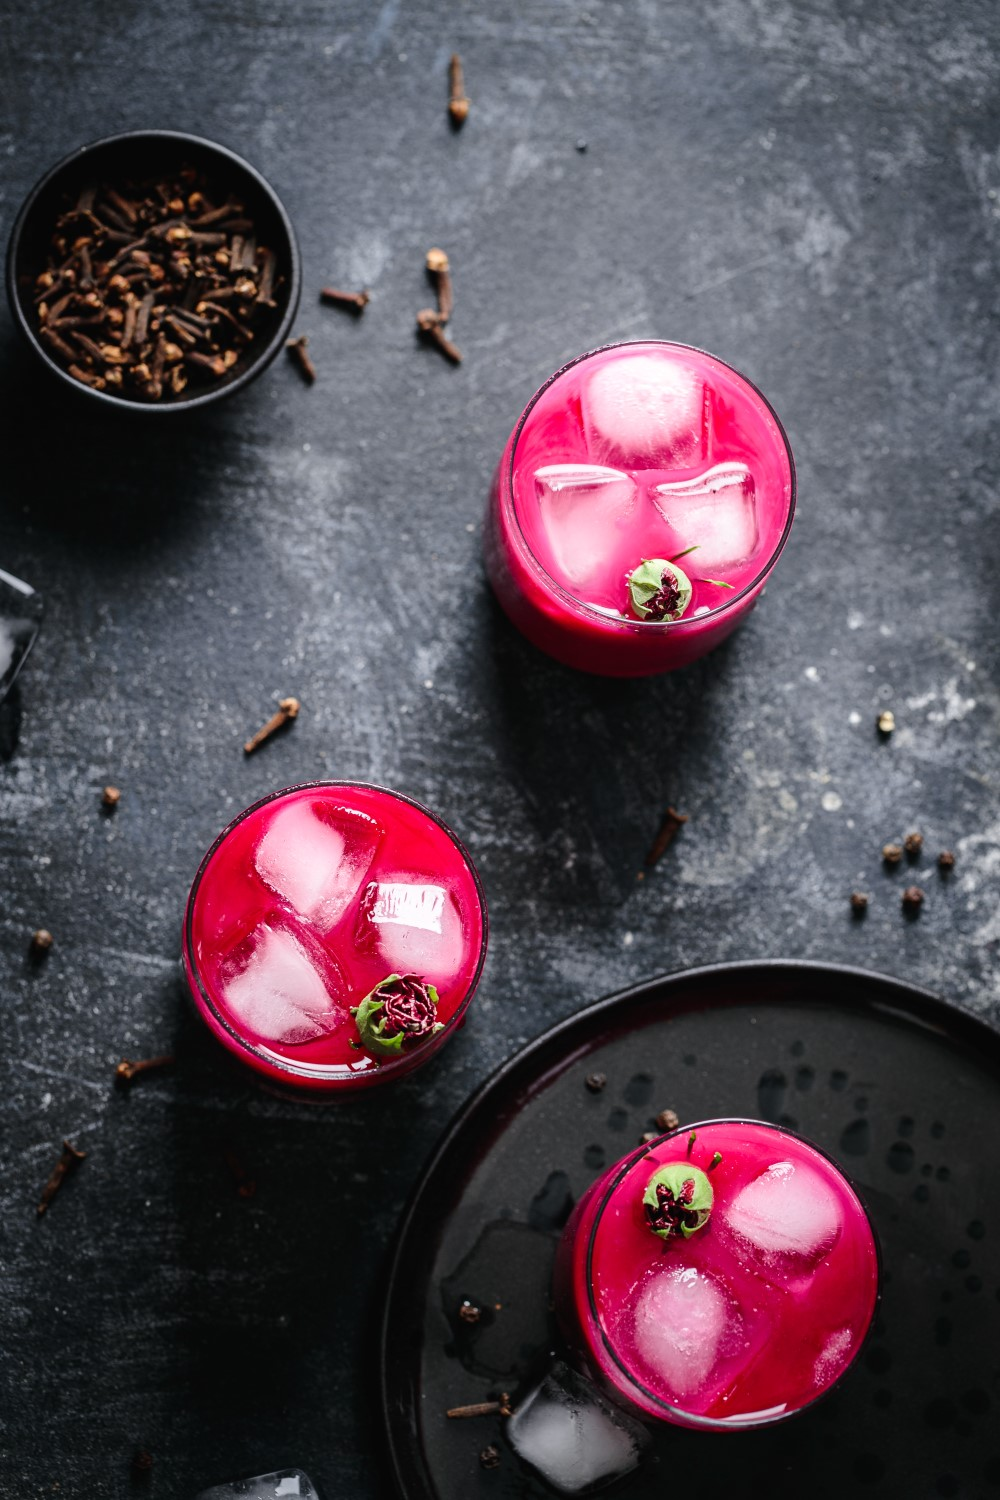 Treat yourself with an iced beetroot chai latte - a perfectly refreshing and fragrant autumn drink!